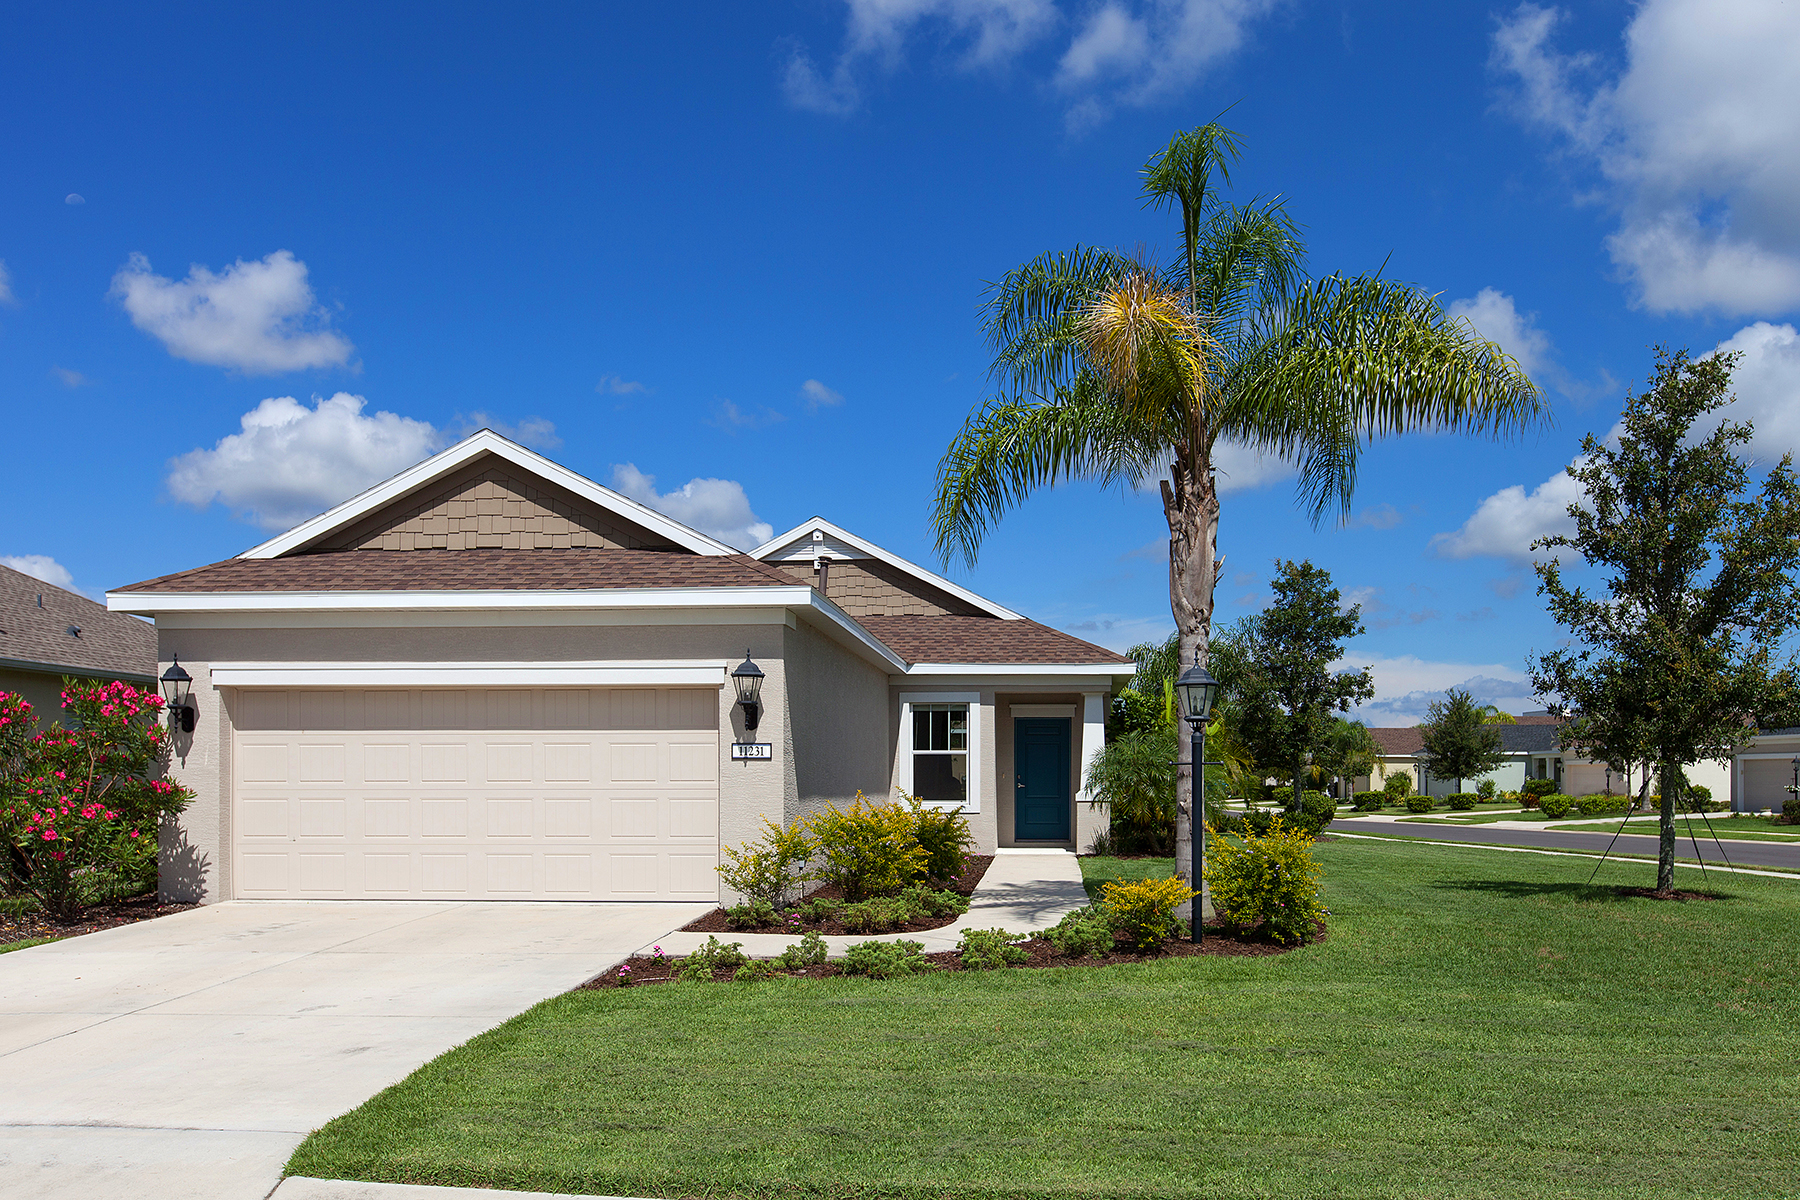 Casa Unifamiliar por un Venta en CENTRAL PARK-PIEDMONT 11231 White Rock Terr Lakewood Ranch, Florida 34211 Estados Unidos